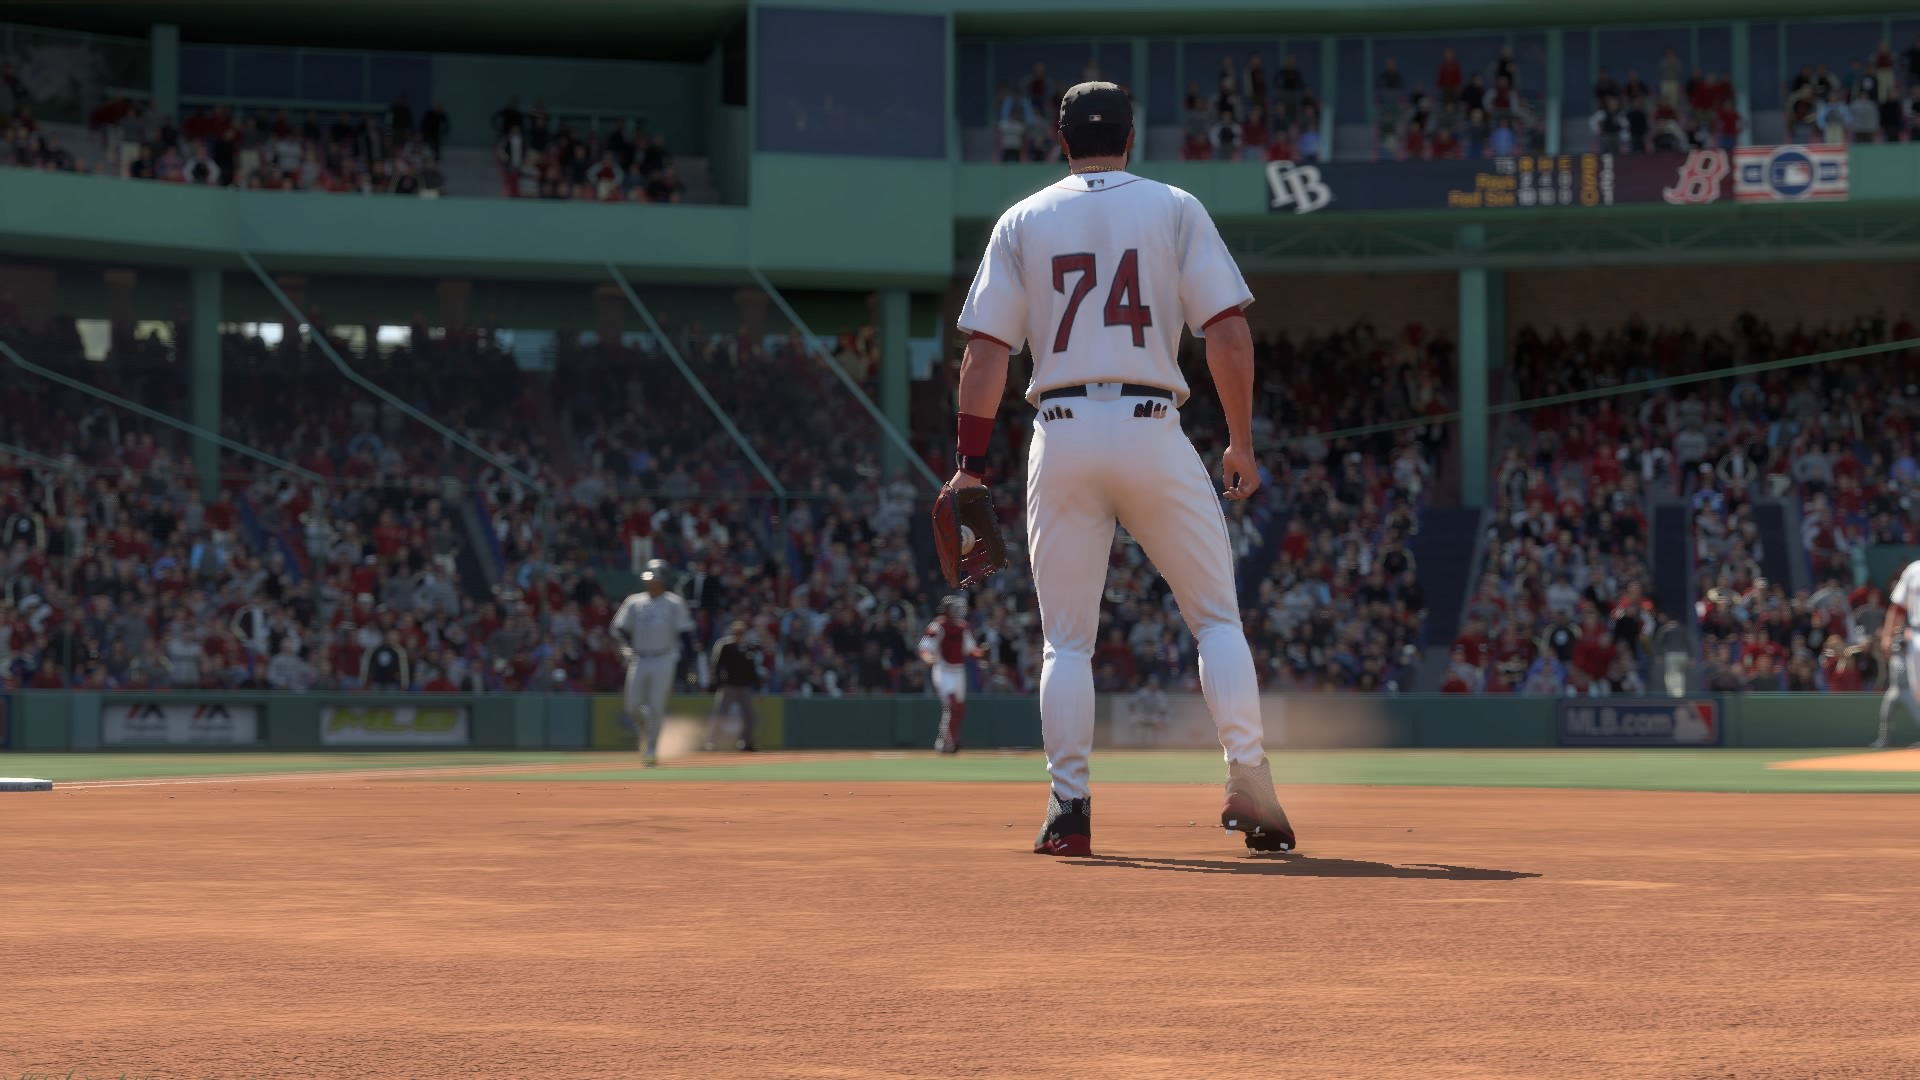 Double play - MLB The Show 16